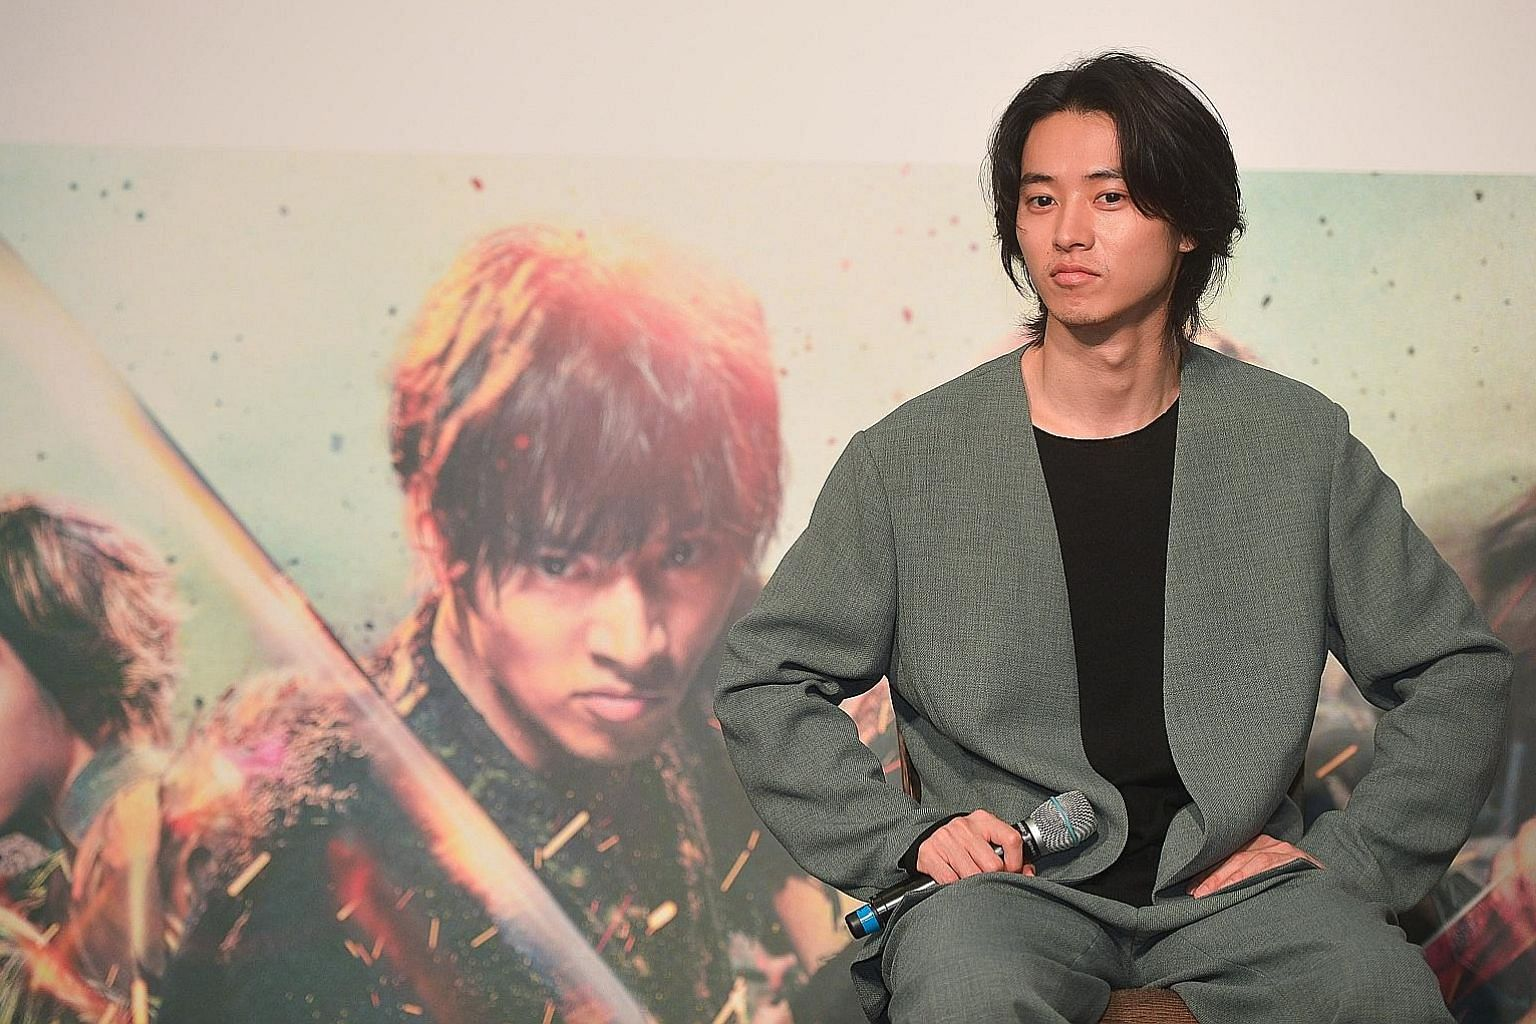 Japanese actor Kento Yamazaki, who headlines historical action film Kingdom, was in town on Monday for a press conference at Marina Bay Sands.